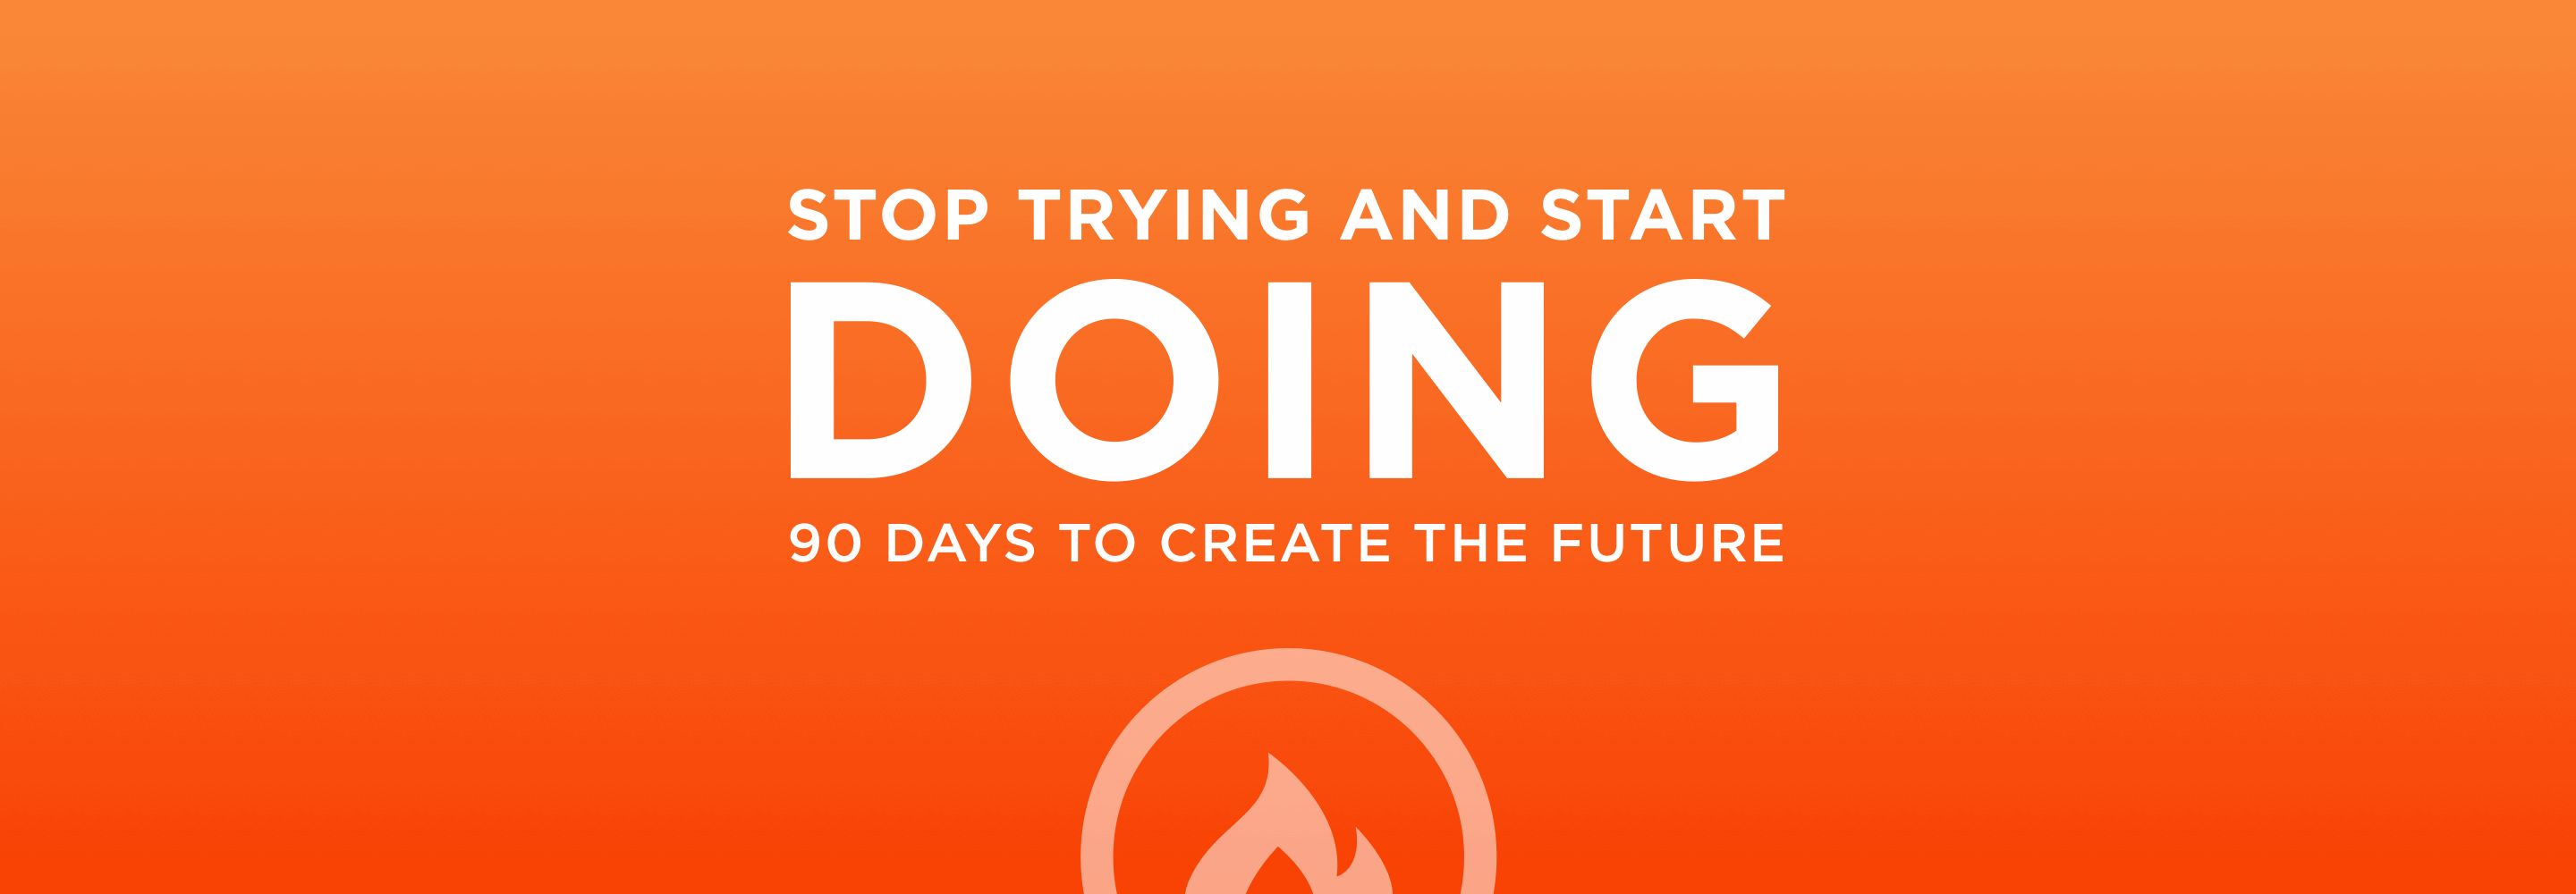 Stop Trying And Start DOING! 90 Days To Create The Future With Ignition90